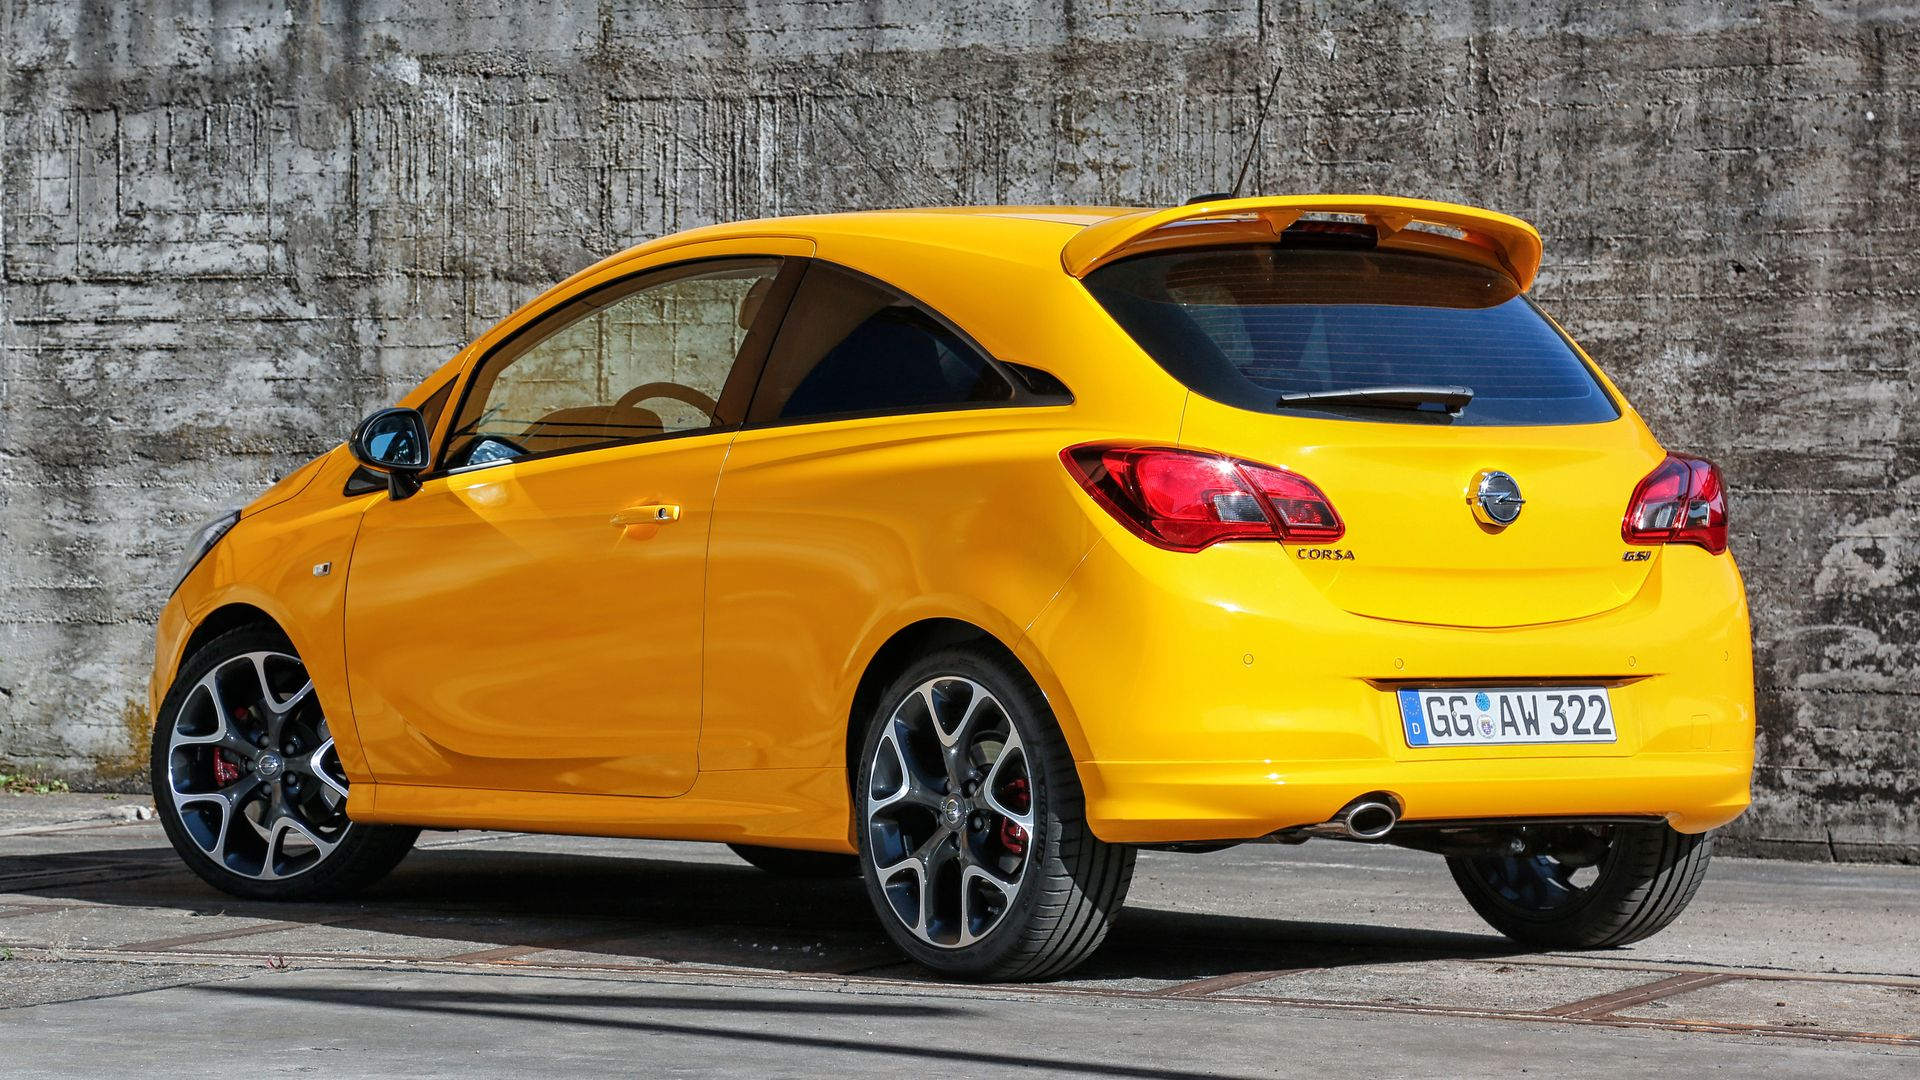 The sight most competitors will see: The rear of the new Opel Corsa GSi features an eye-catching roof spoiler that generates additional downforce on the rear axle.